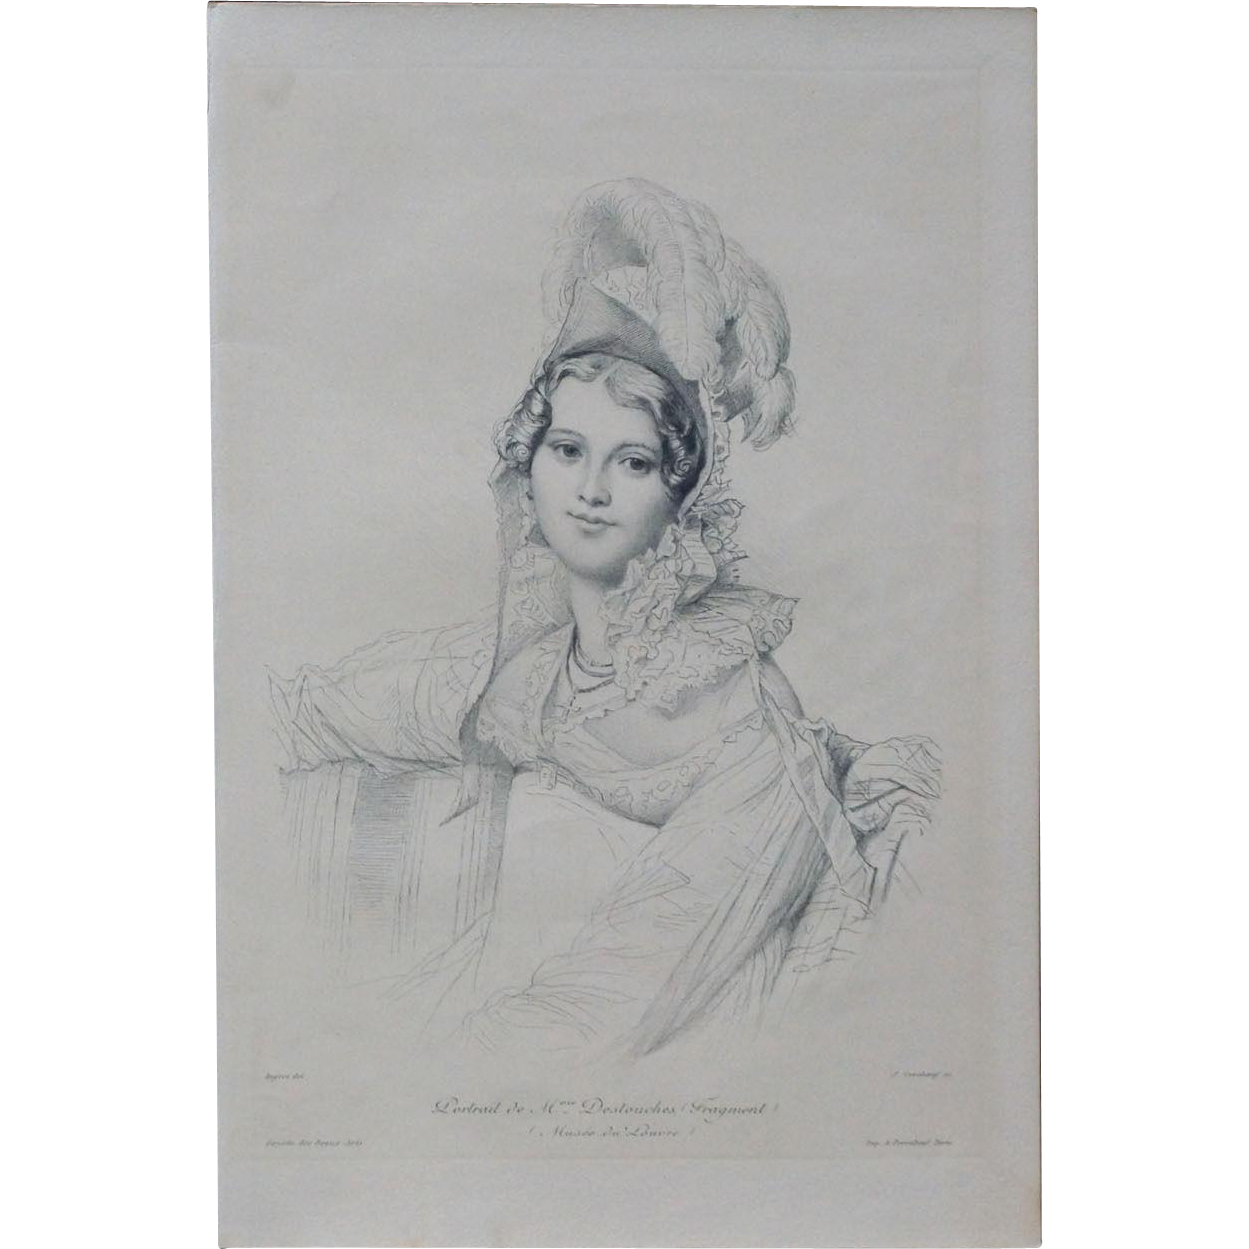 Ingres drawing portrait. Sale french burin engraving